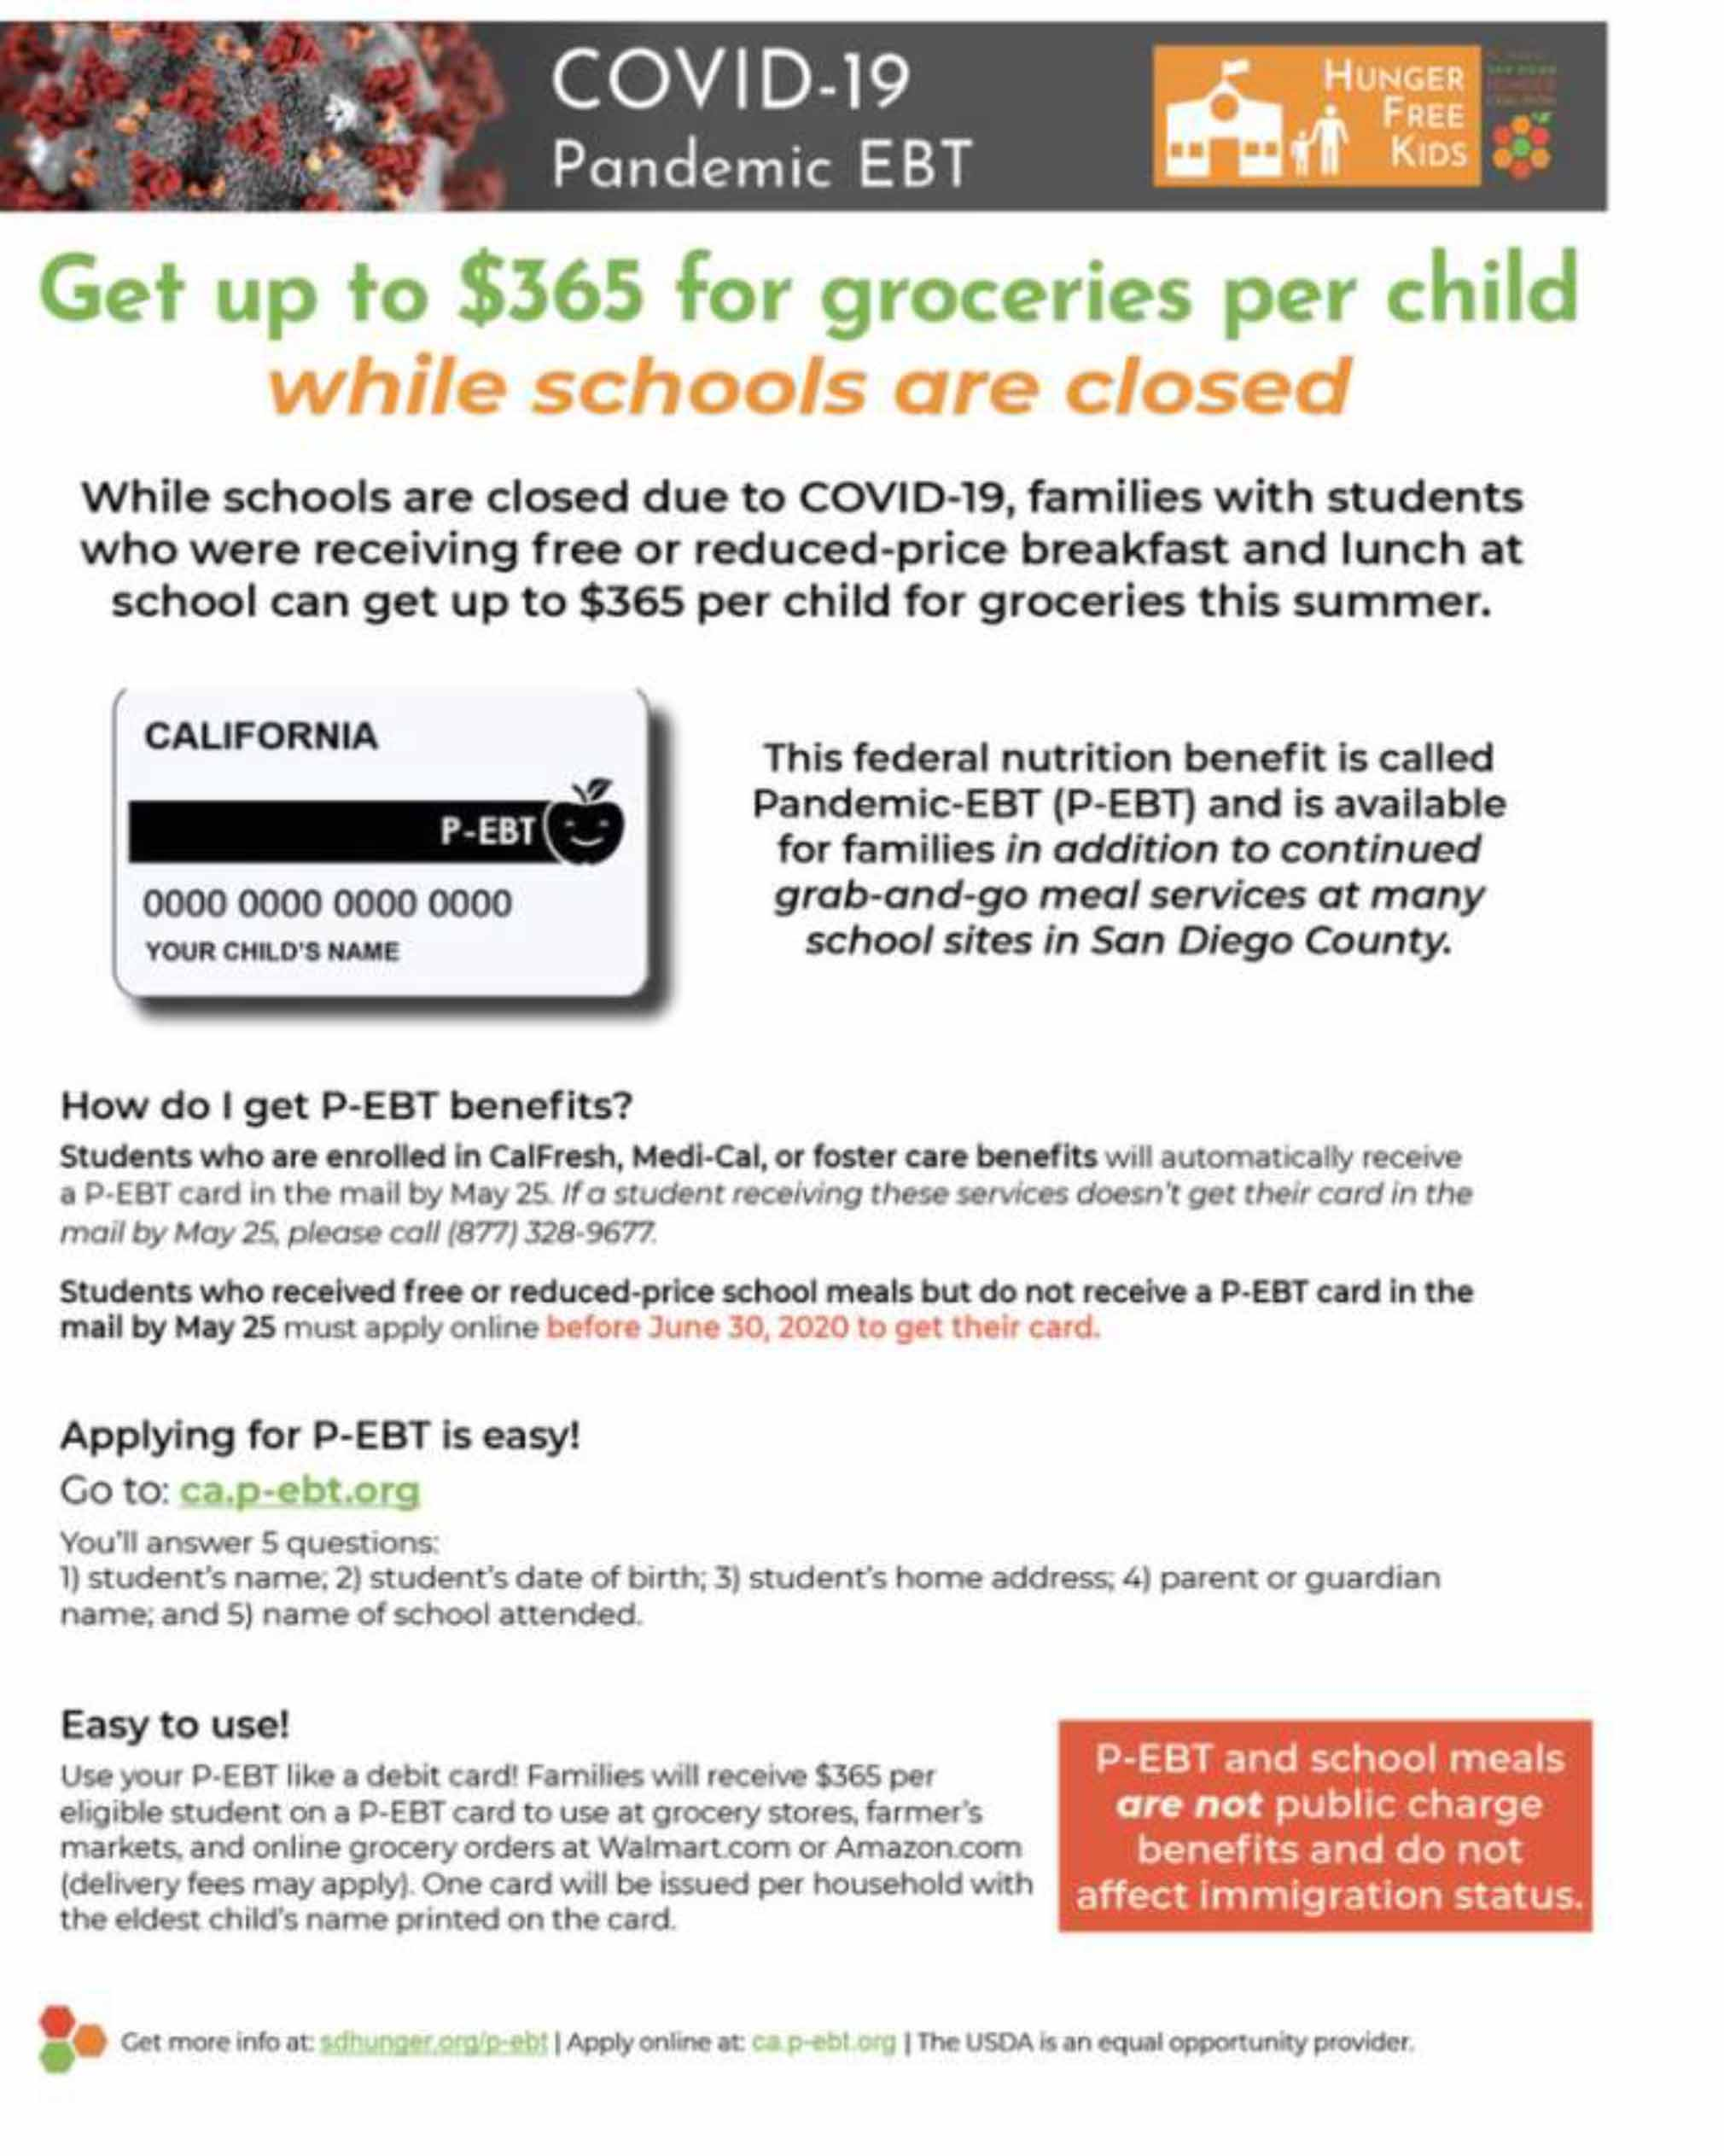 COVID-19 Pandemic EBT- Hunger Free Kids flyer